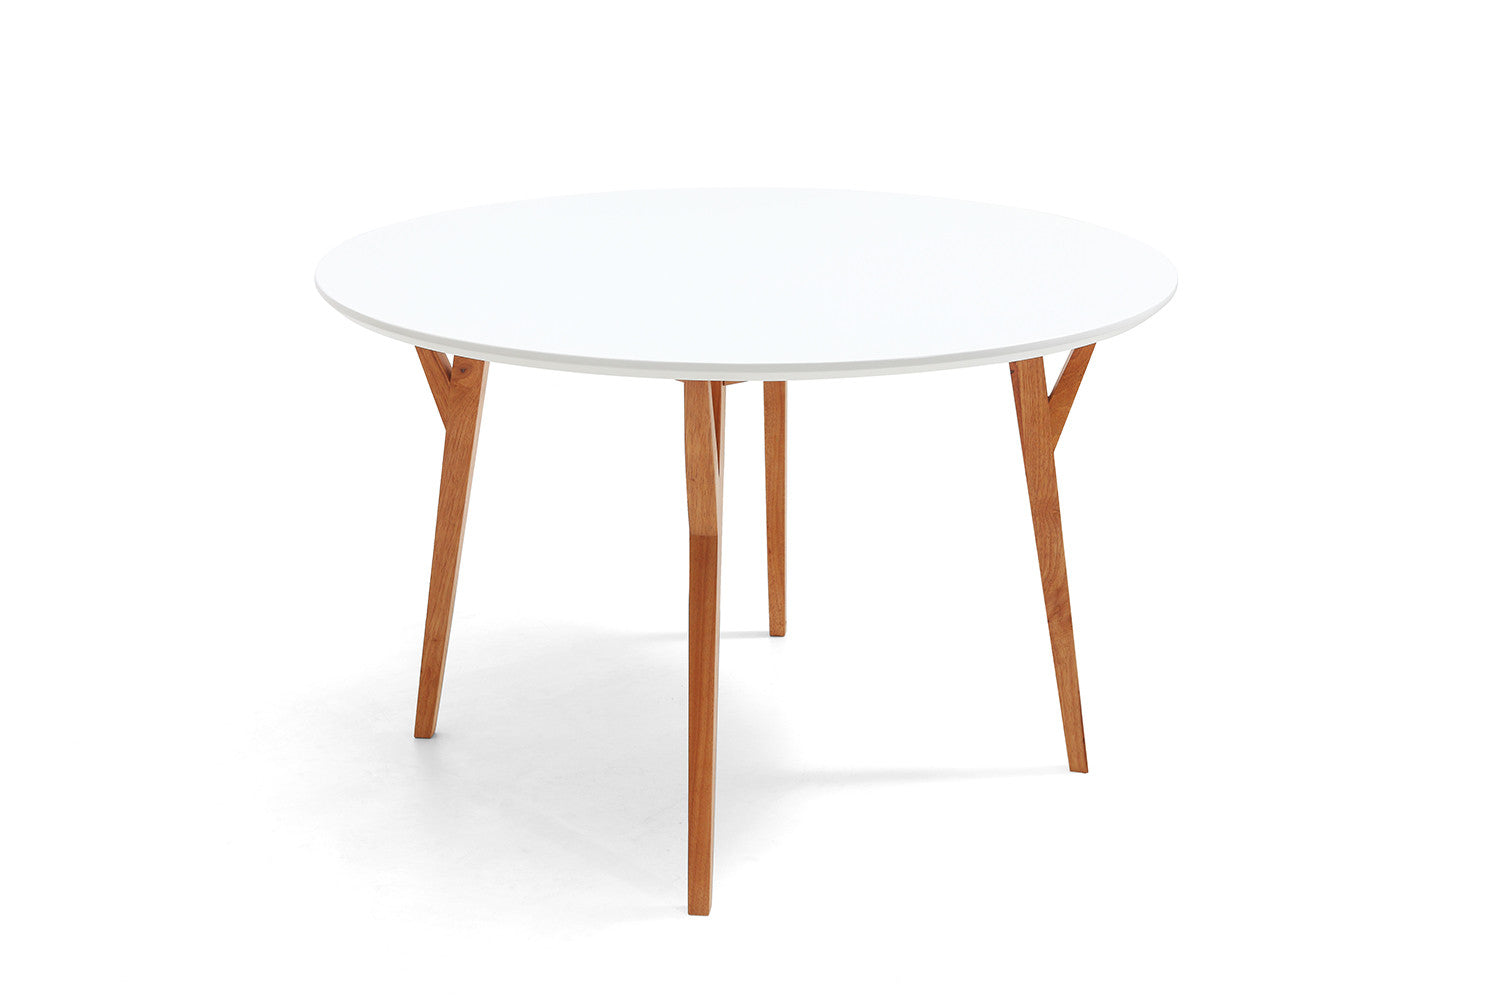 Table de salle manger ronde design scandinave moesa for Table de salle a manger design avec rallonge